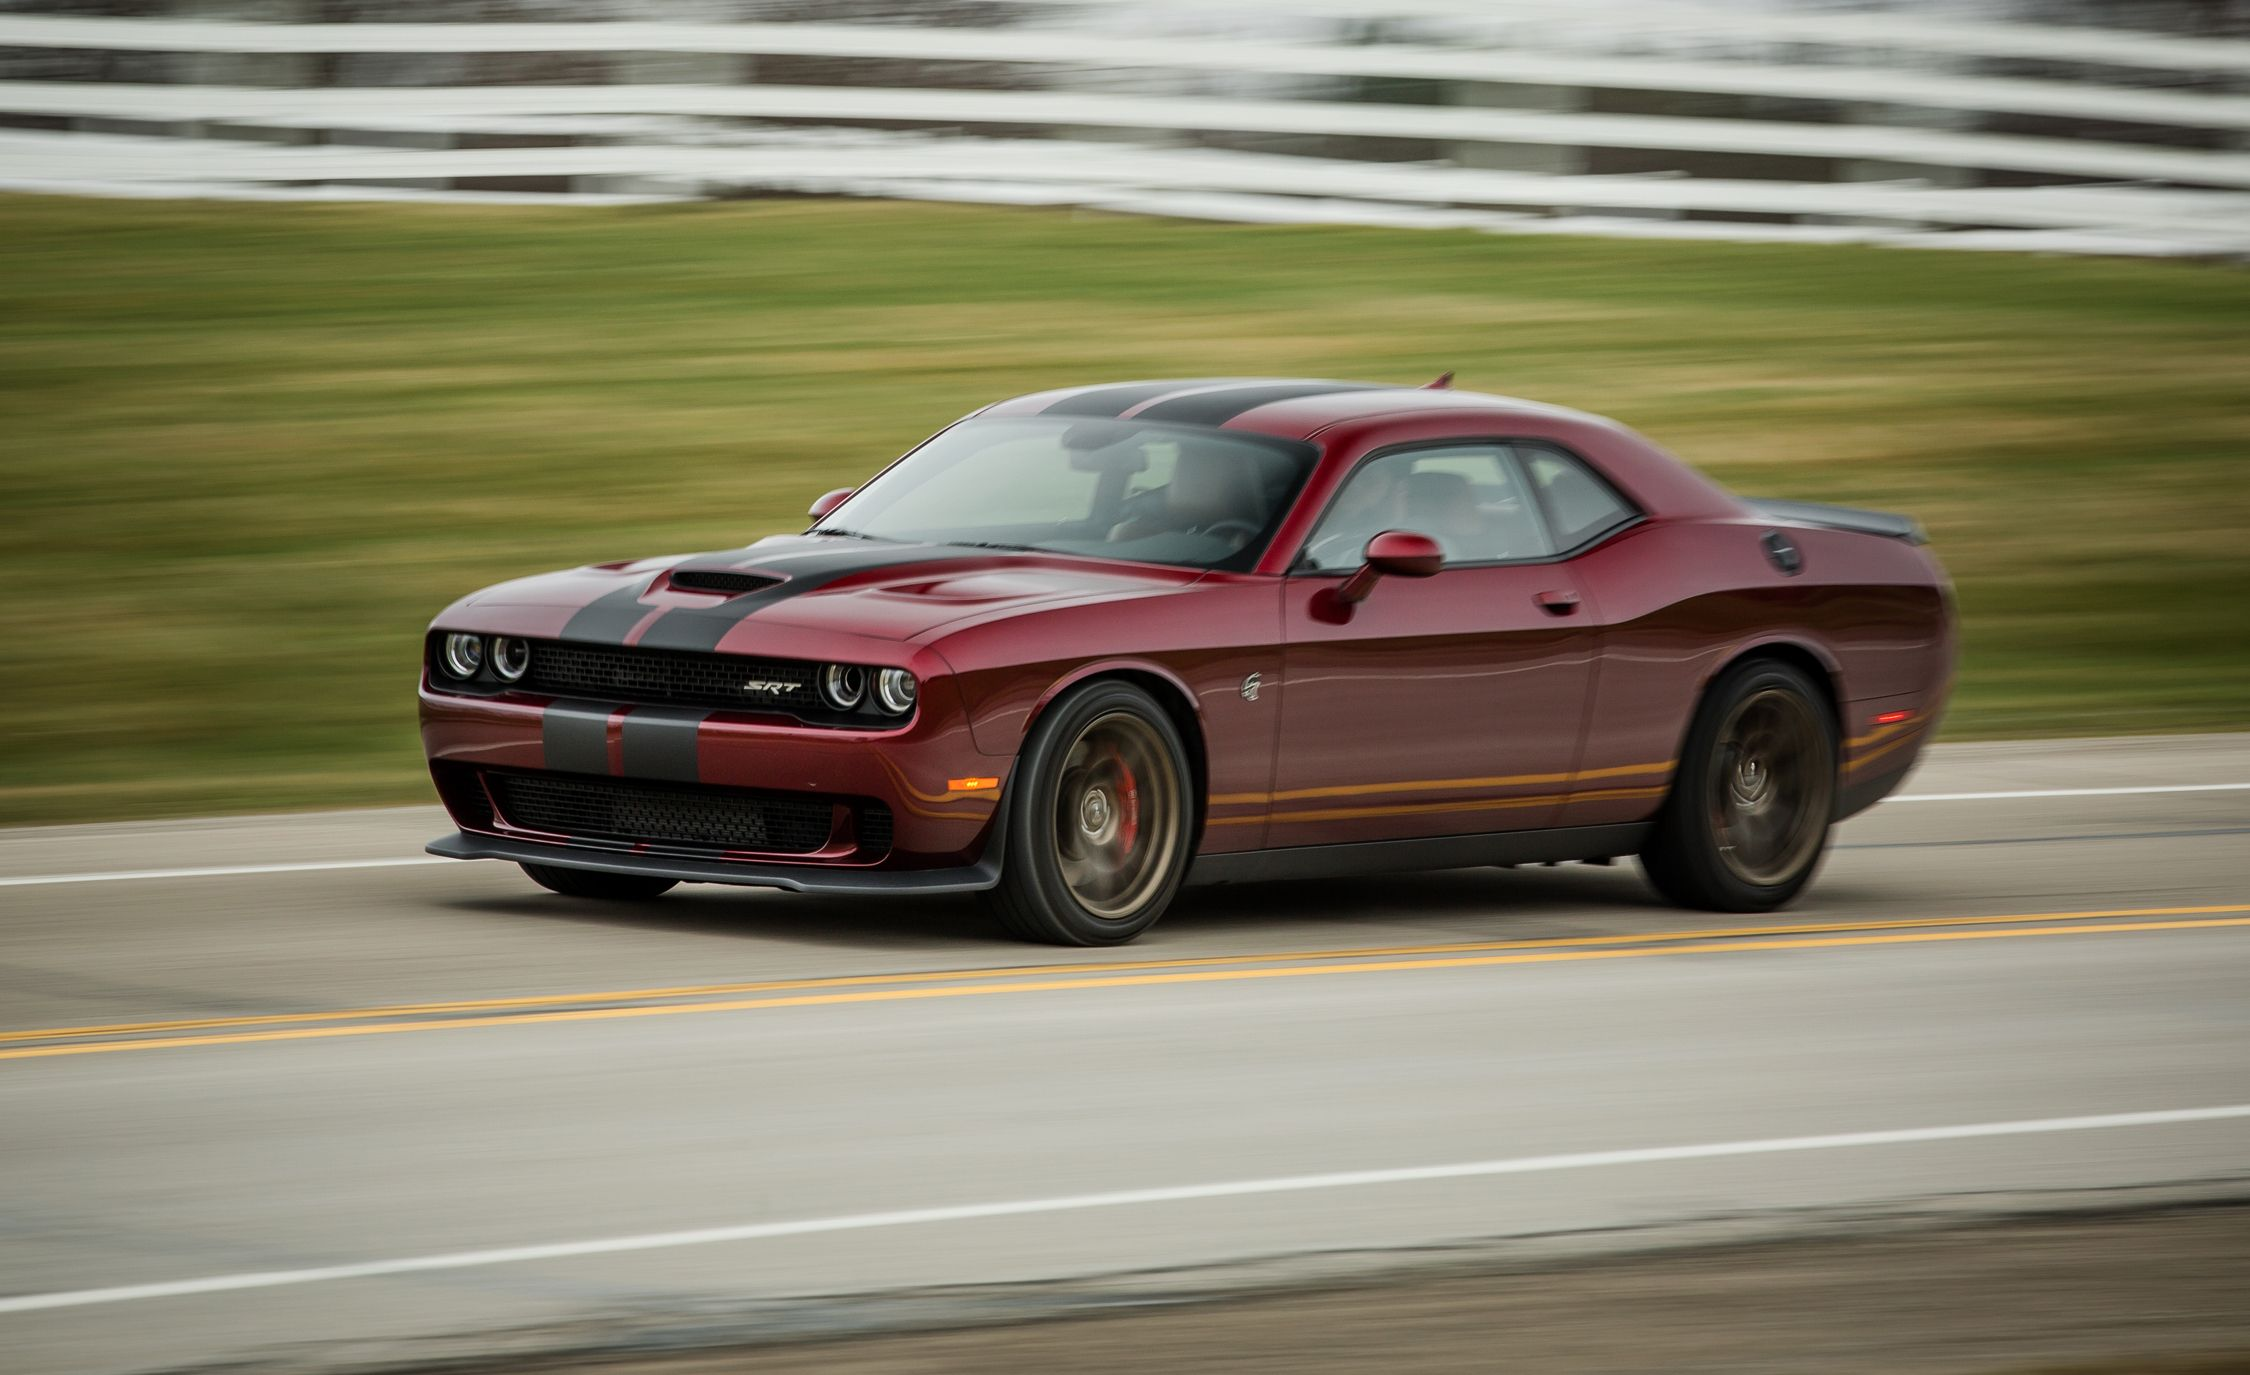 2015 Dodge Challenger Srt Hellcat Manual Test Review Car And Driver Charger Cat